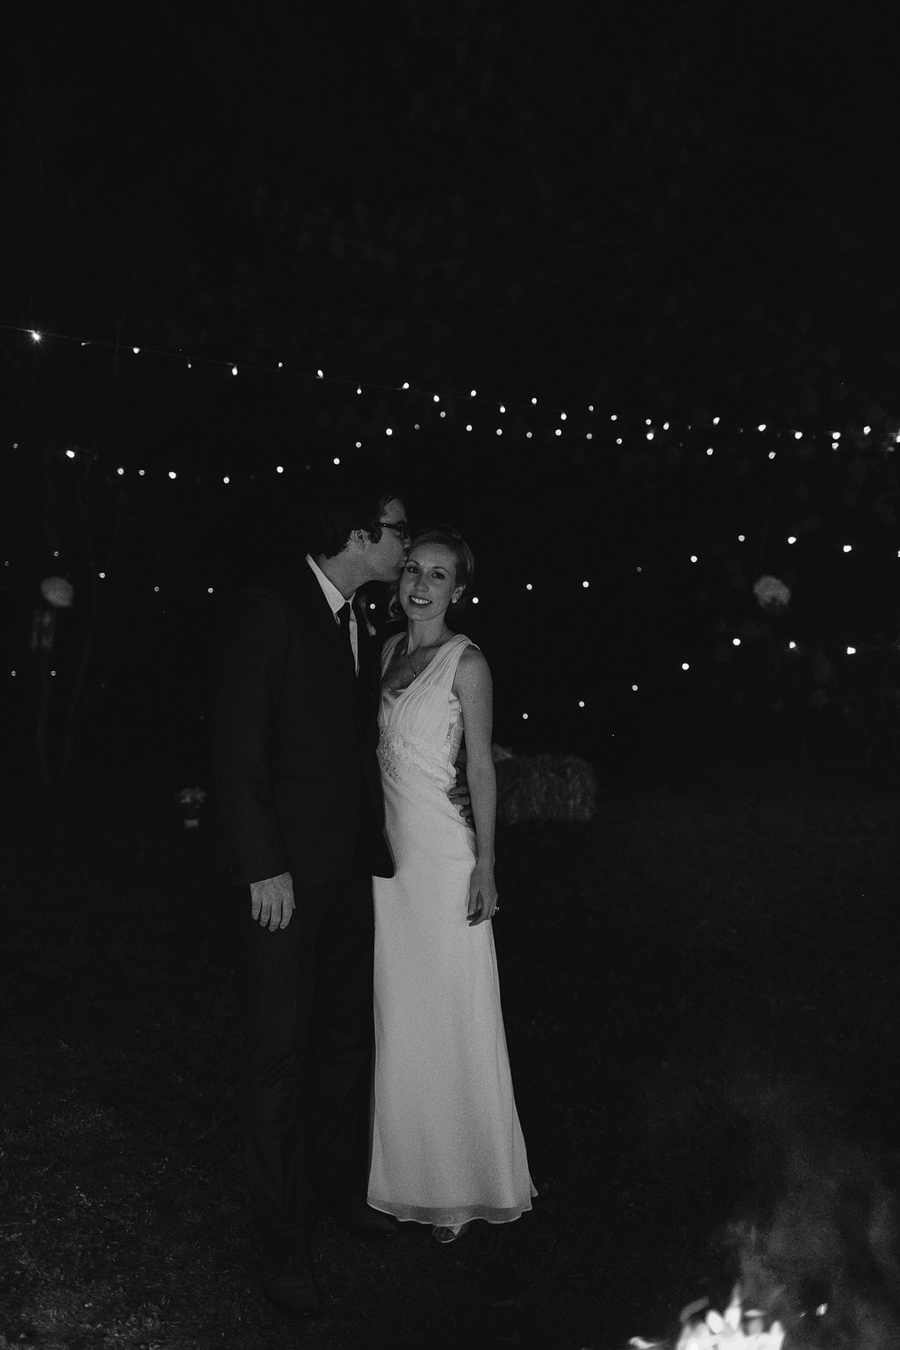 Contemporary Wedding Photographers: Night portraits